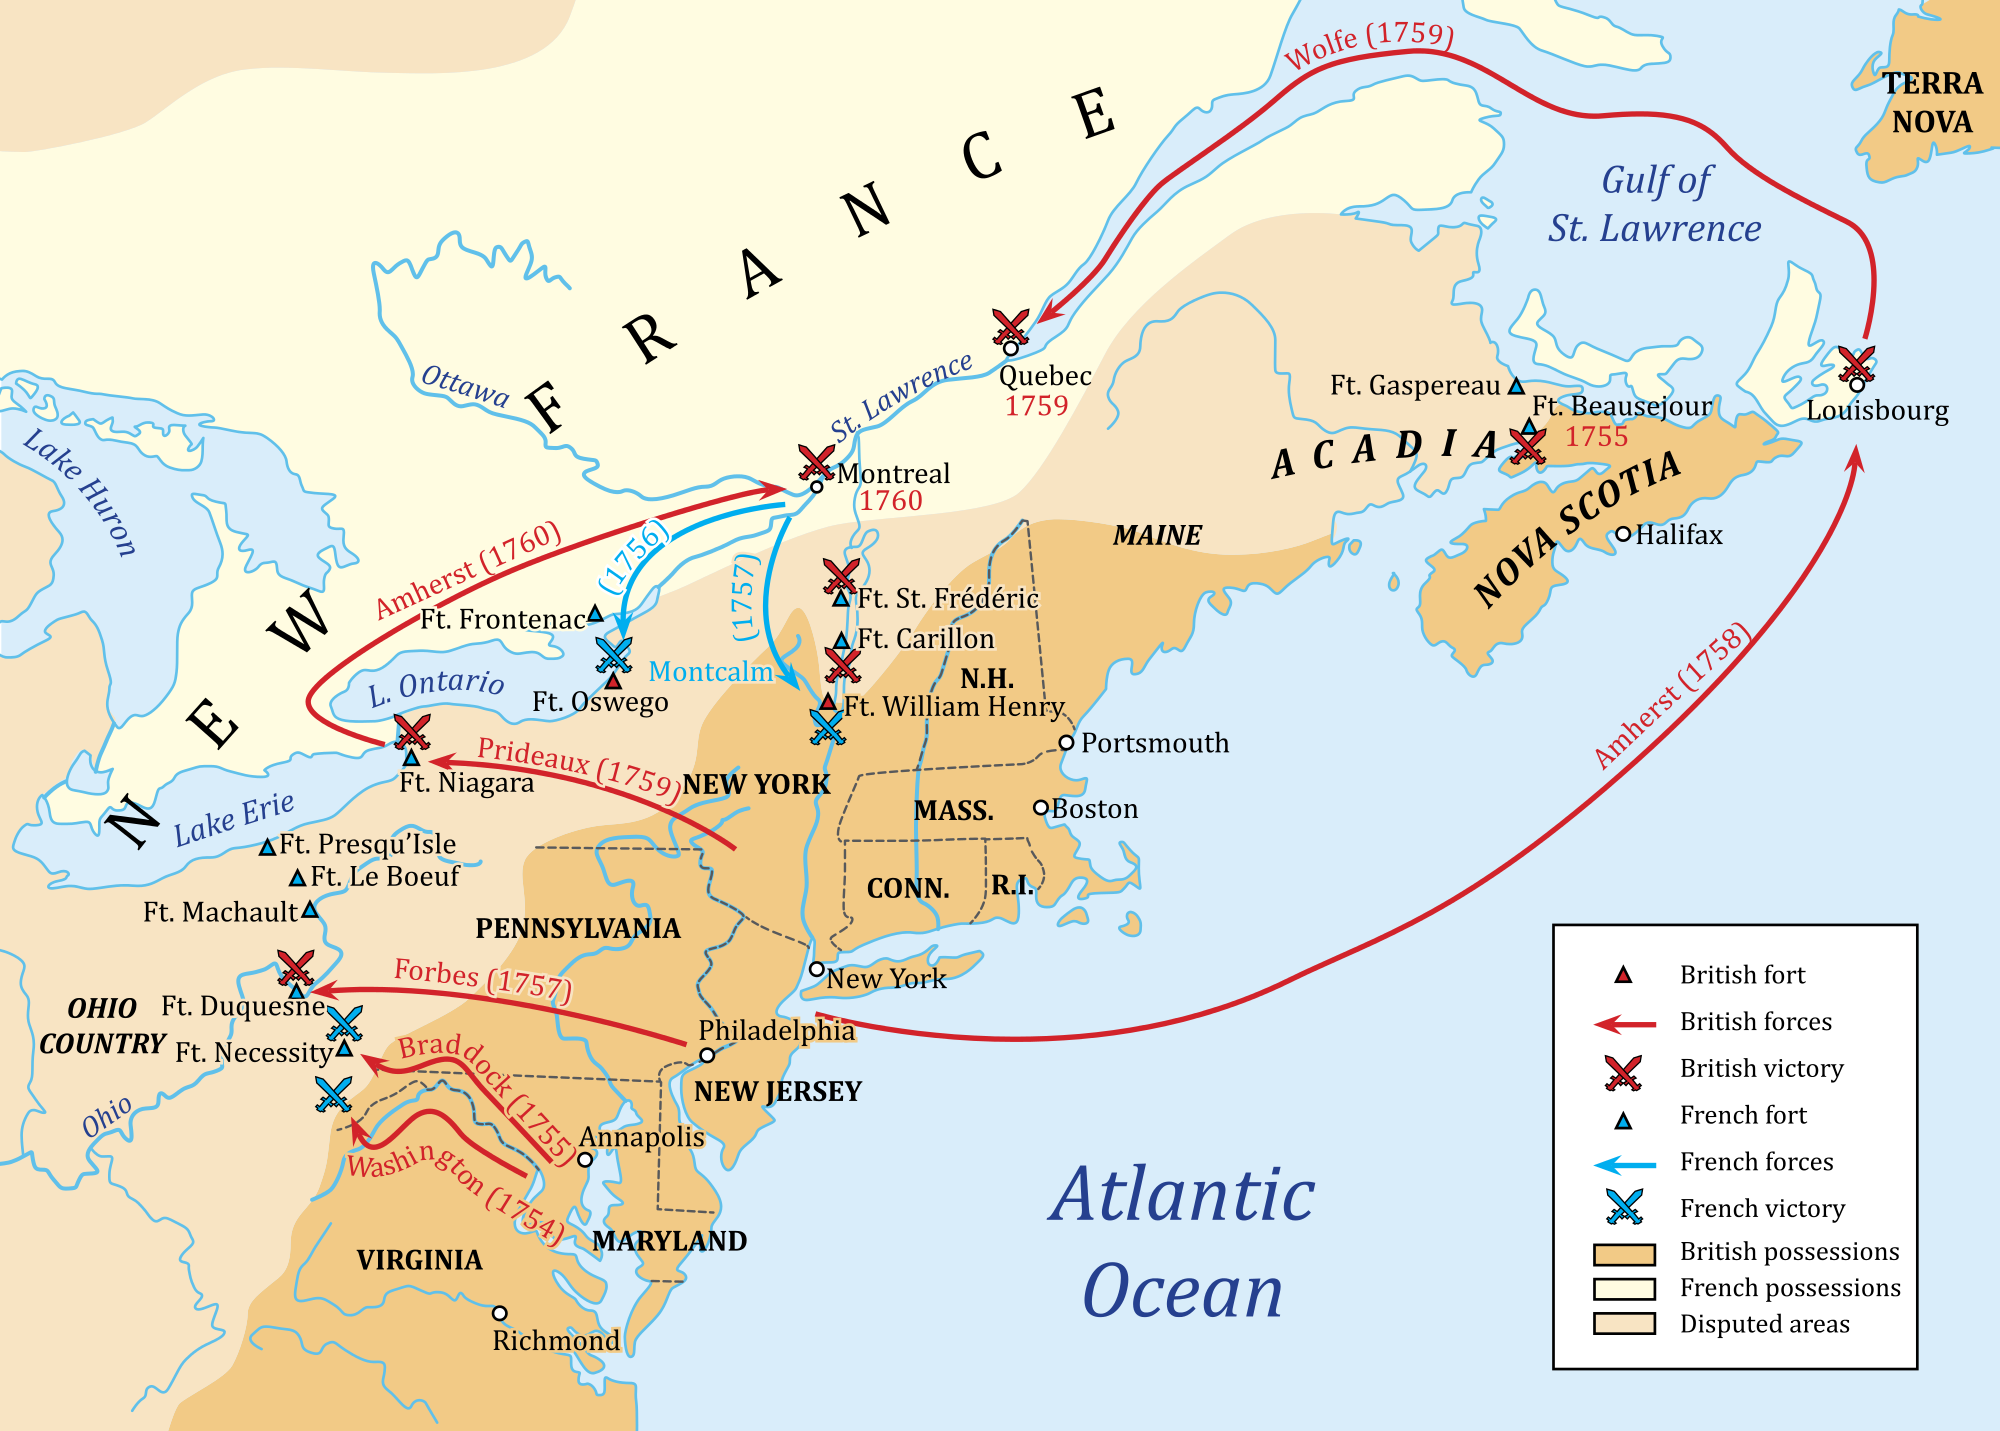 the alliance of the americans and the french to retake new york city from the british army during th